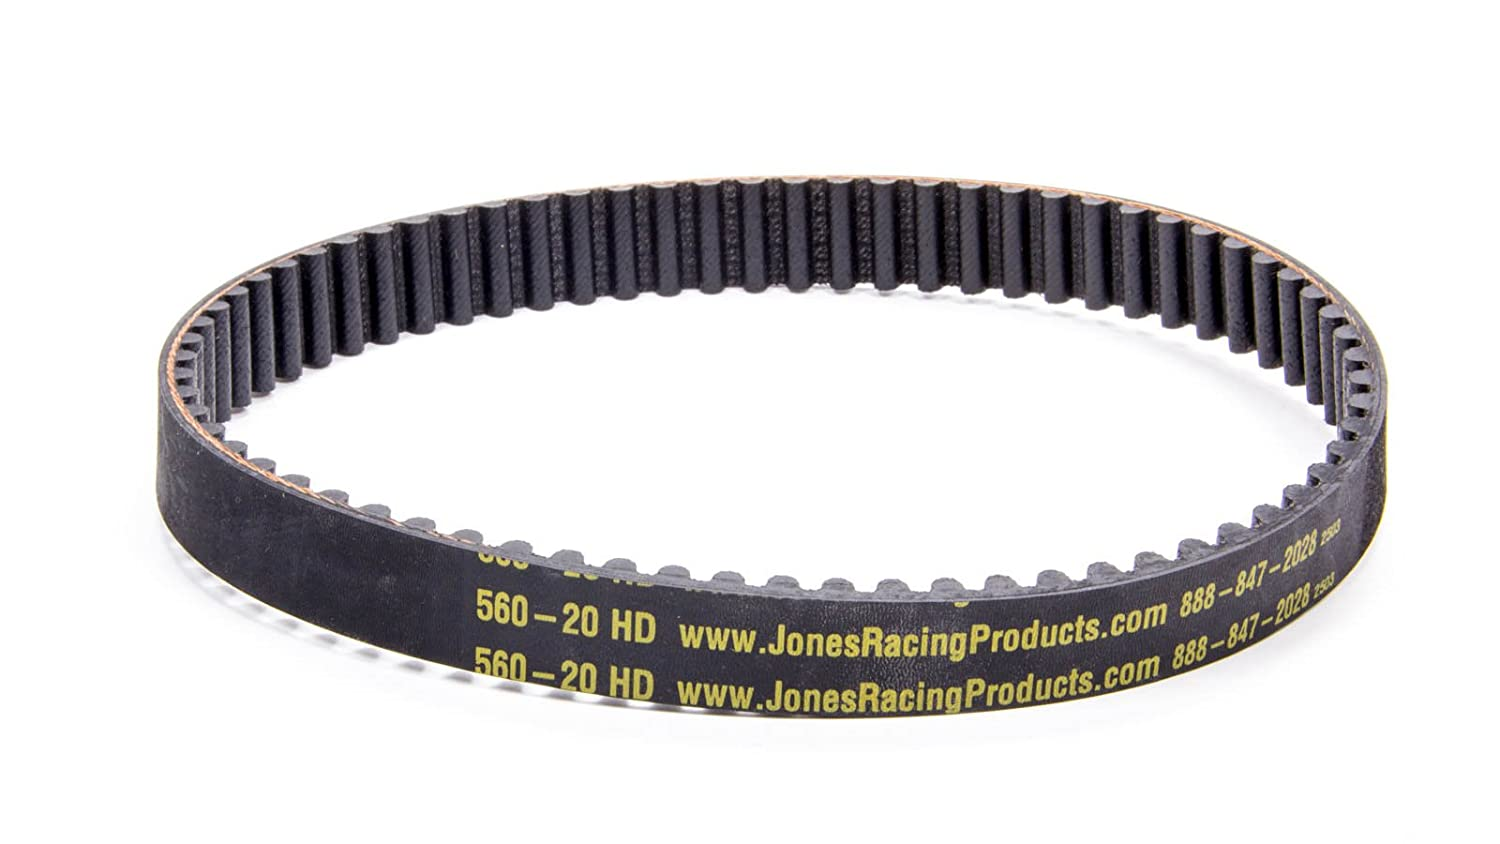 Jones Racing Products 840-20HD HTD Belt 840-20 HD